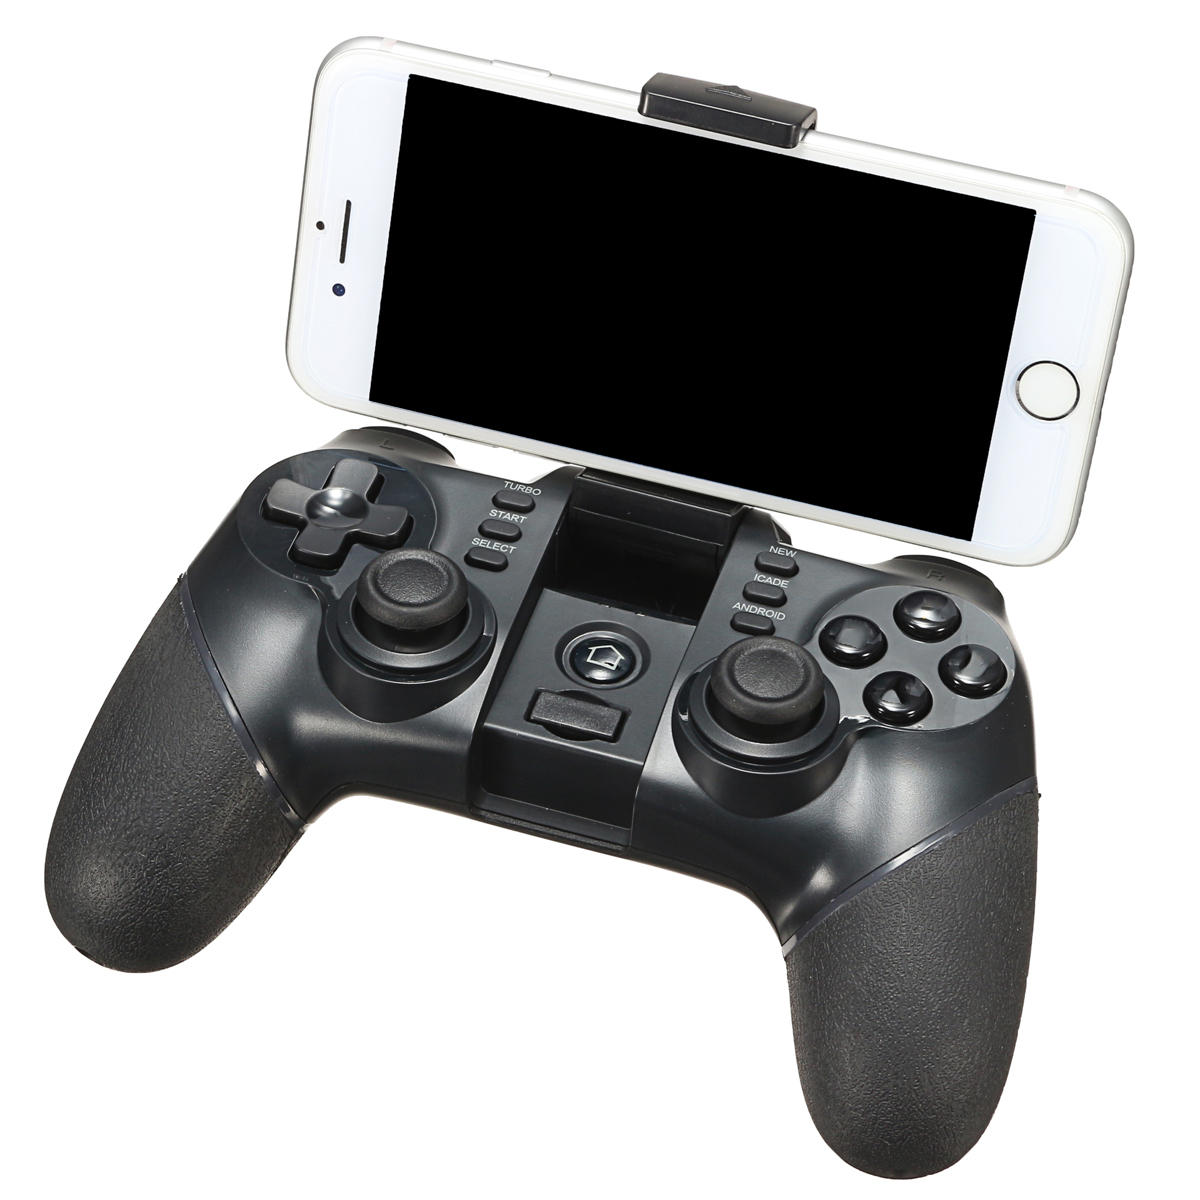 ipega pg-9076 gaming bluetooth 2.4g wireless wired controller gamepad joystick for ps3 android phone tablet pc laptop Sale - Banggood.com sold out